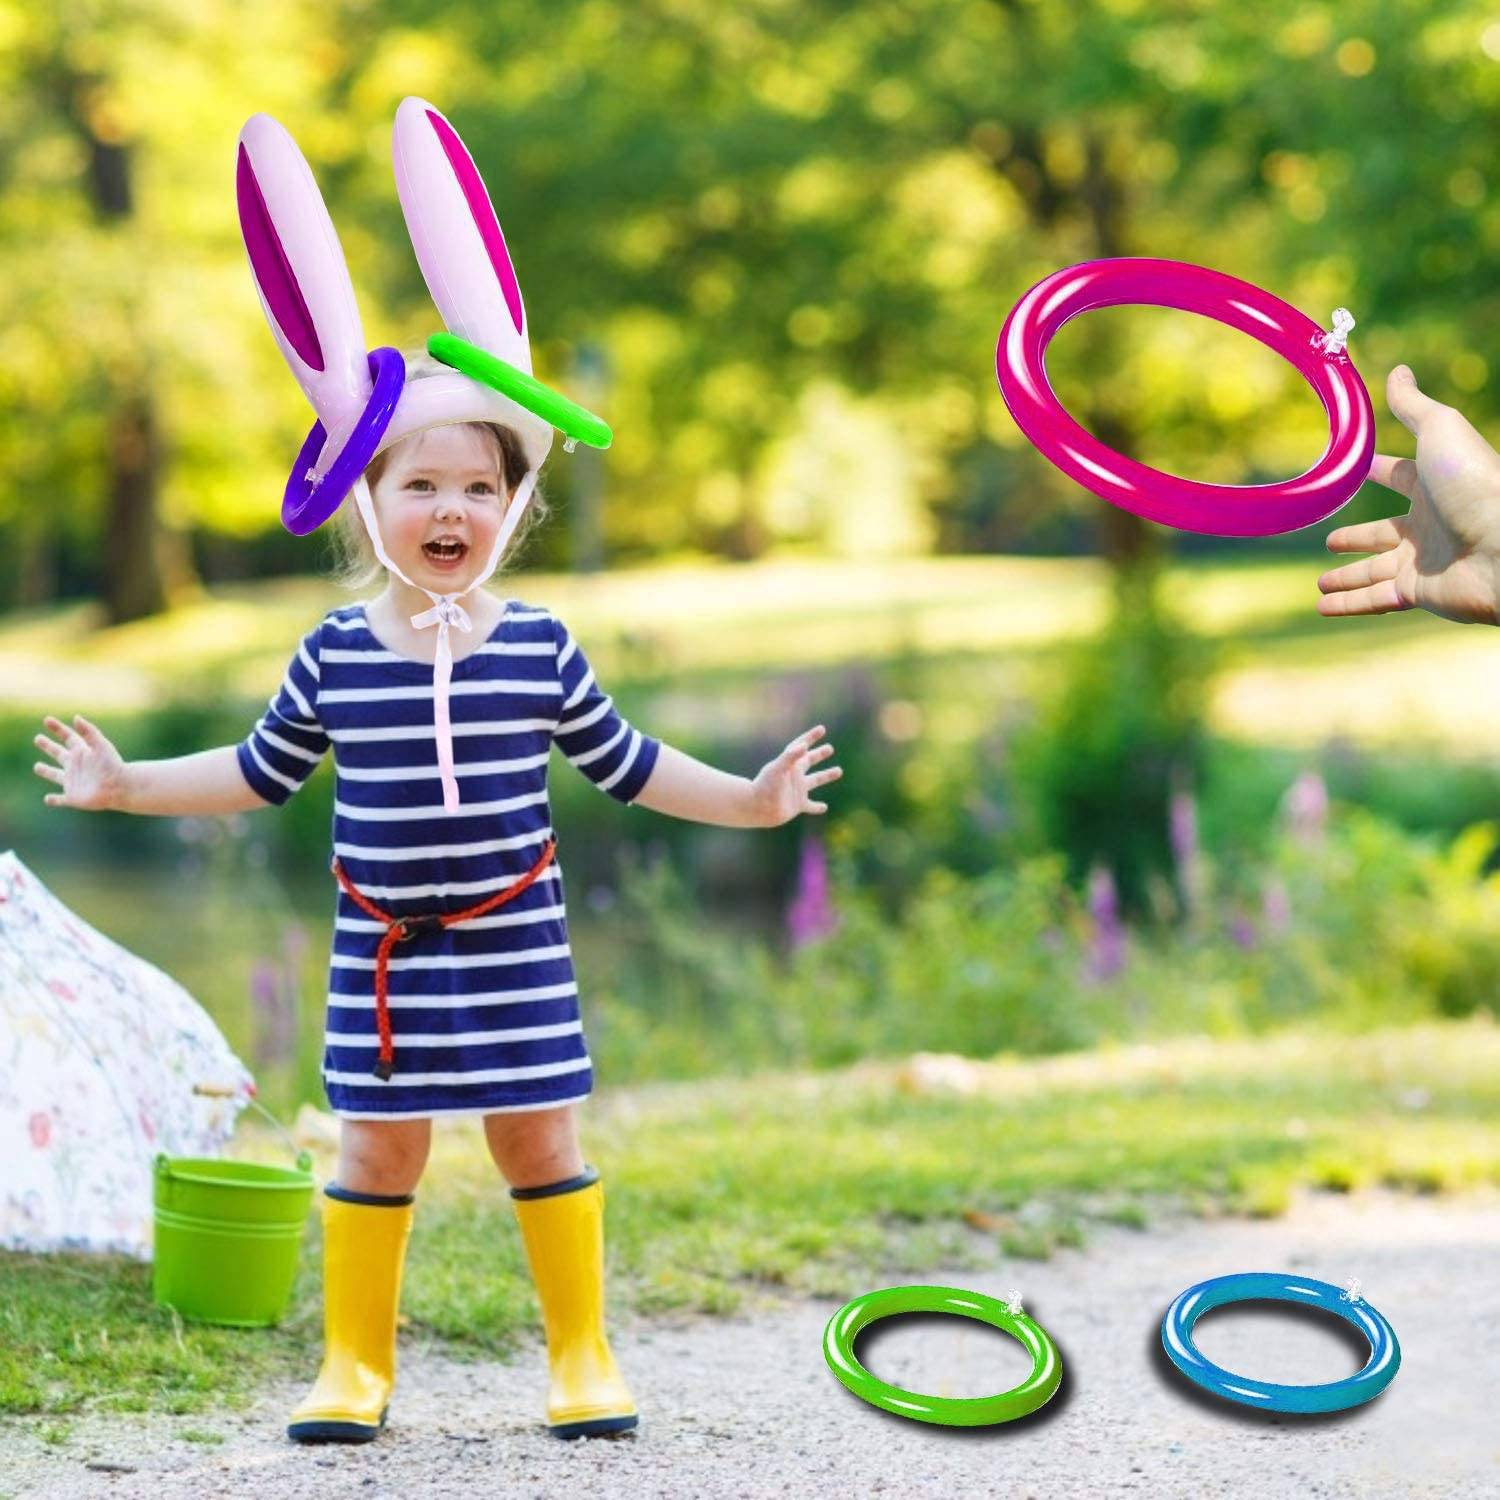 Funny Inflatable Rabbit Ears Toy